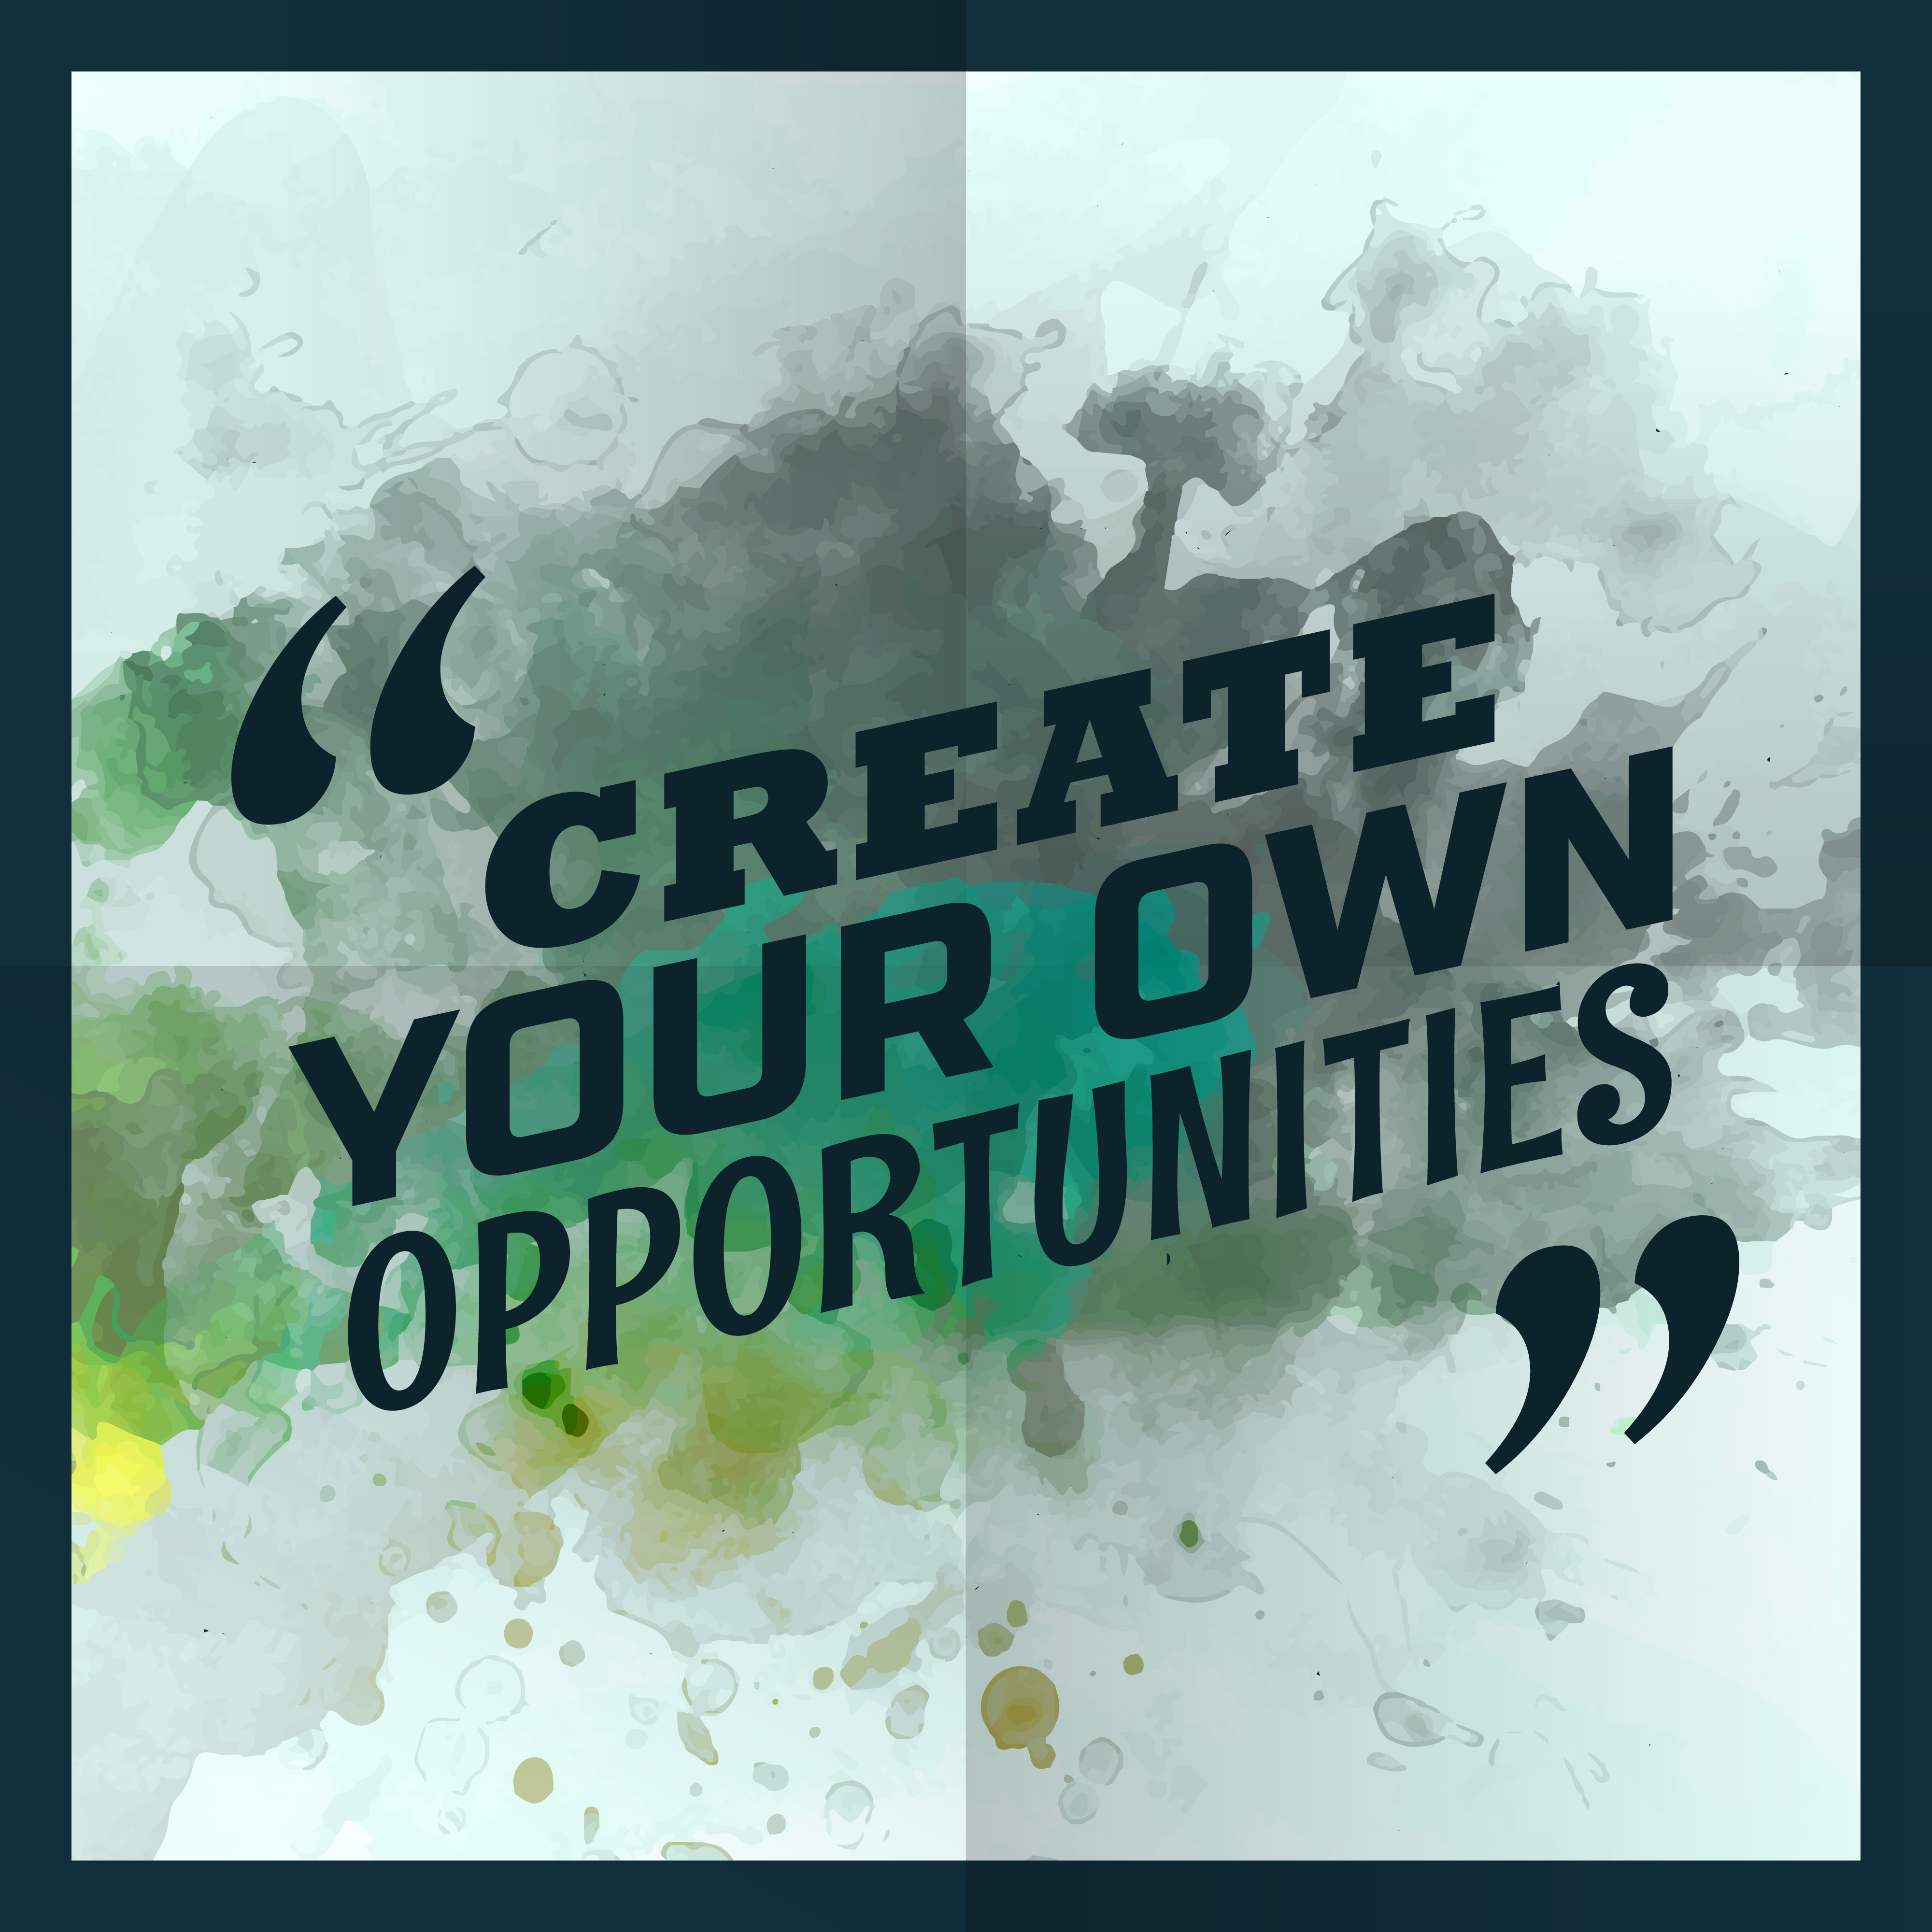 Inspirational Quotes Motivation: Create Your Own Opportunities Inspirational Quotation